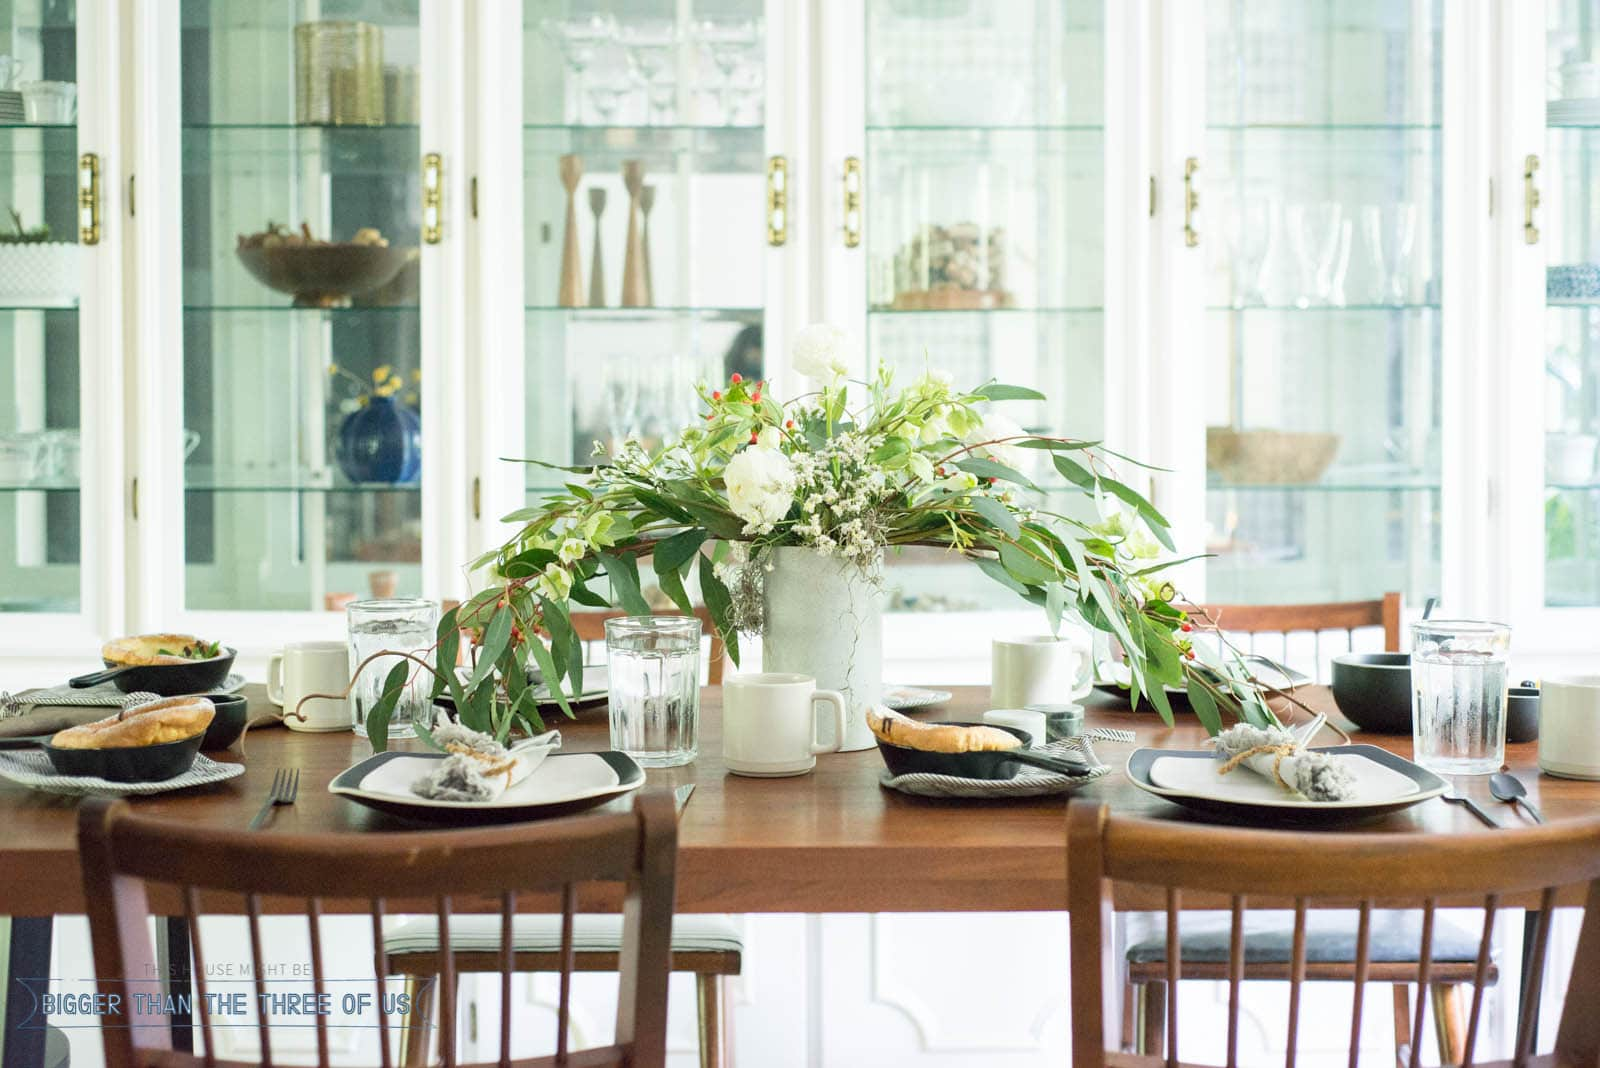 How to set a beautiful table for brunch